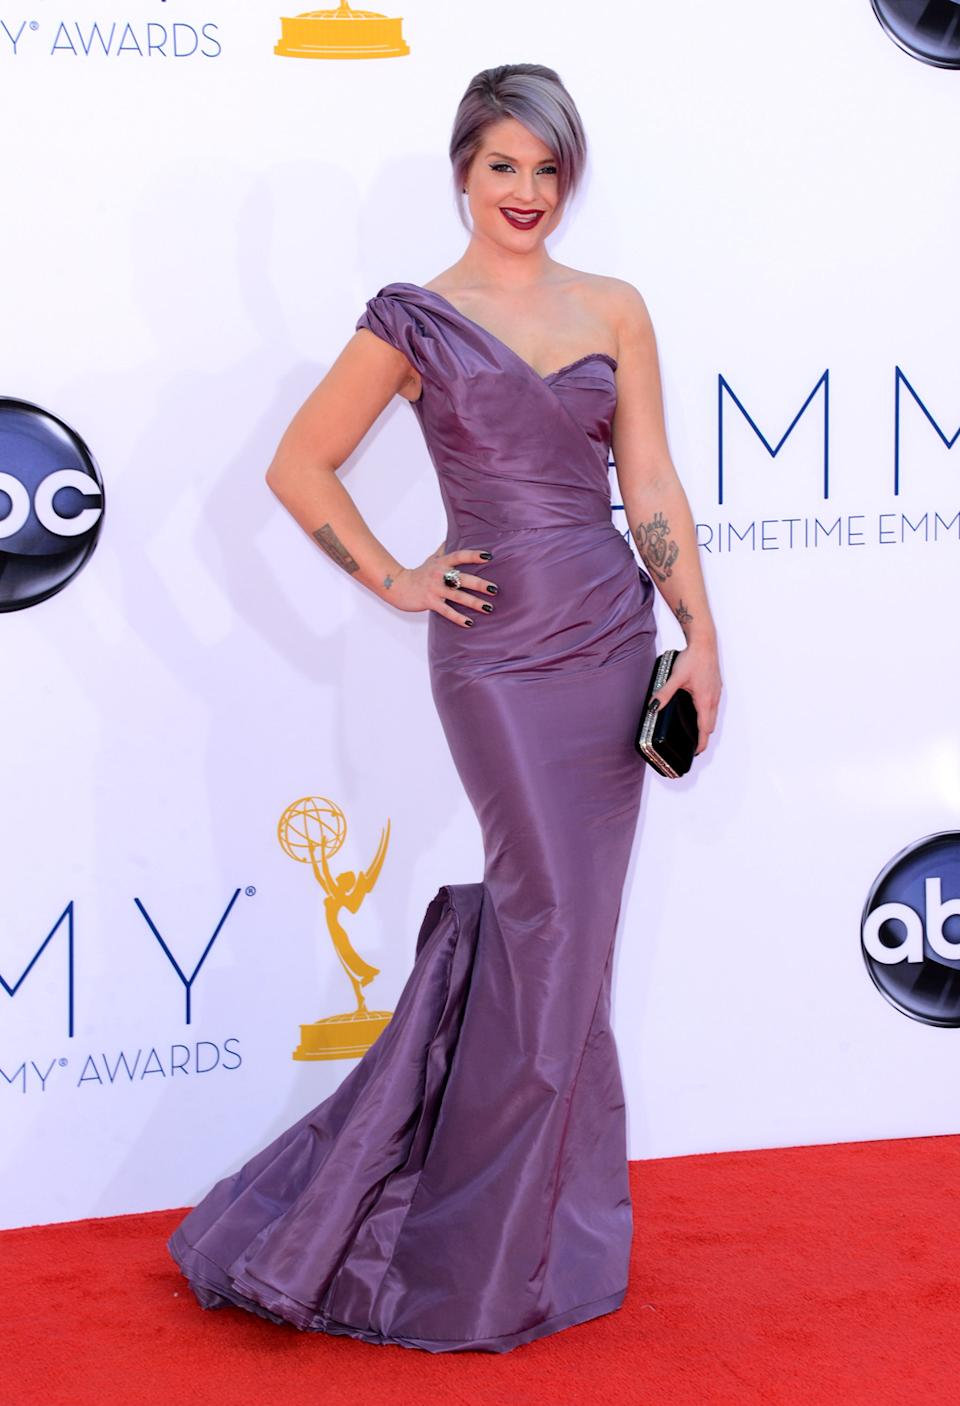 TV personality Kelly Osbourne arrives at the 64th Primetime Emmy Awards at the Nokia Theatre in Los Angeles on September 23, 2012. (Photo by Jason Merritt/WireImage)